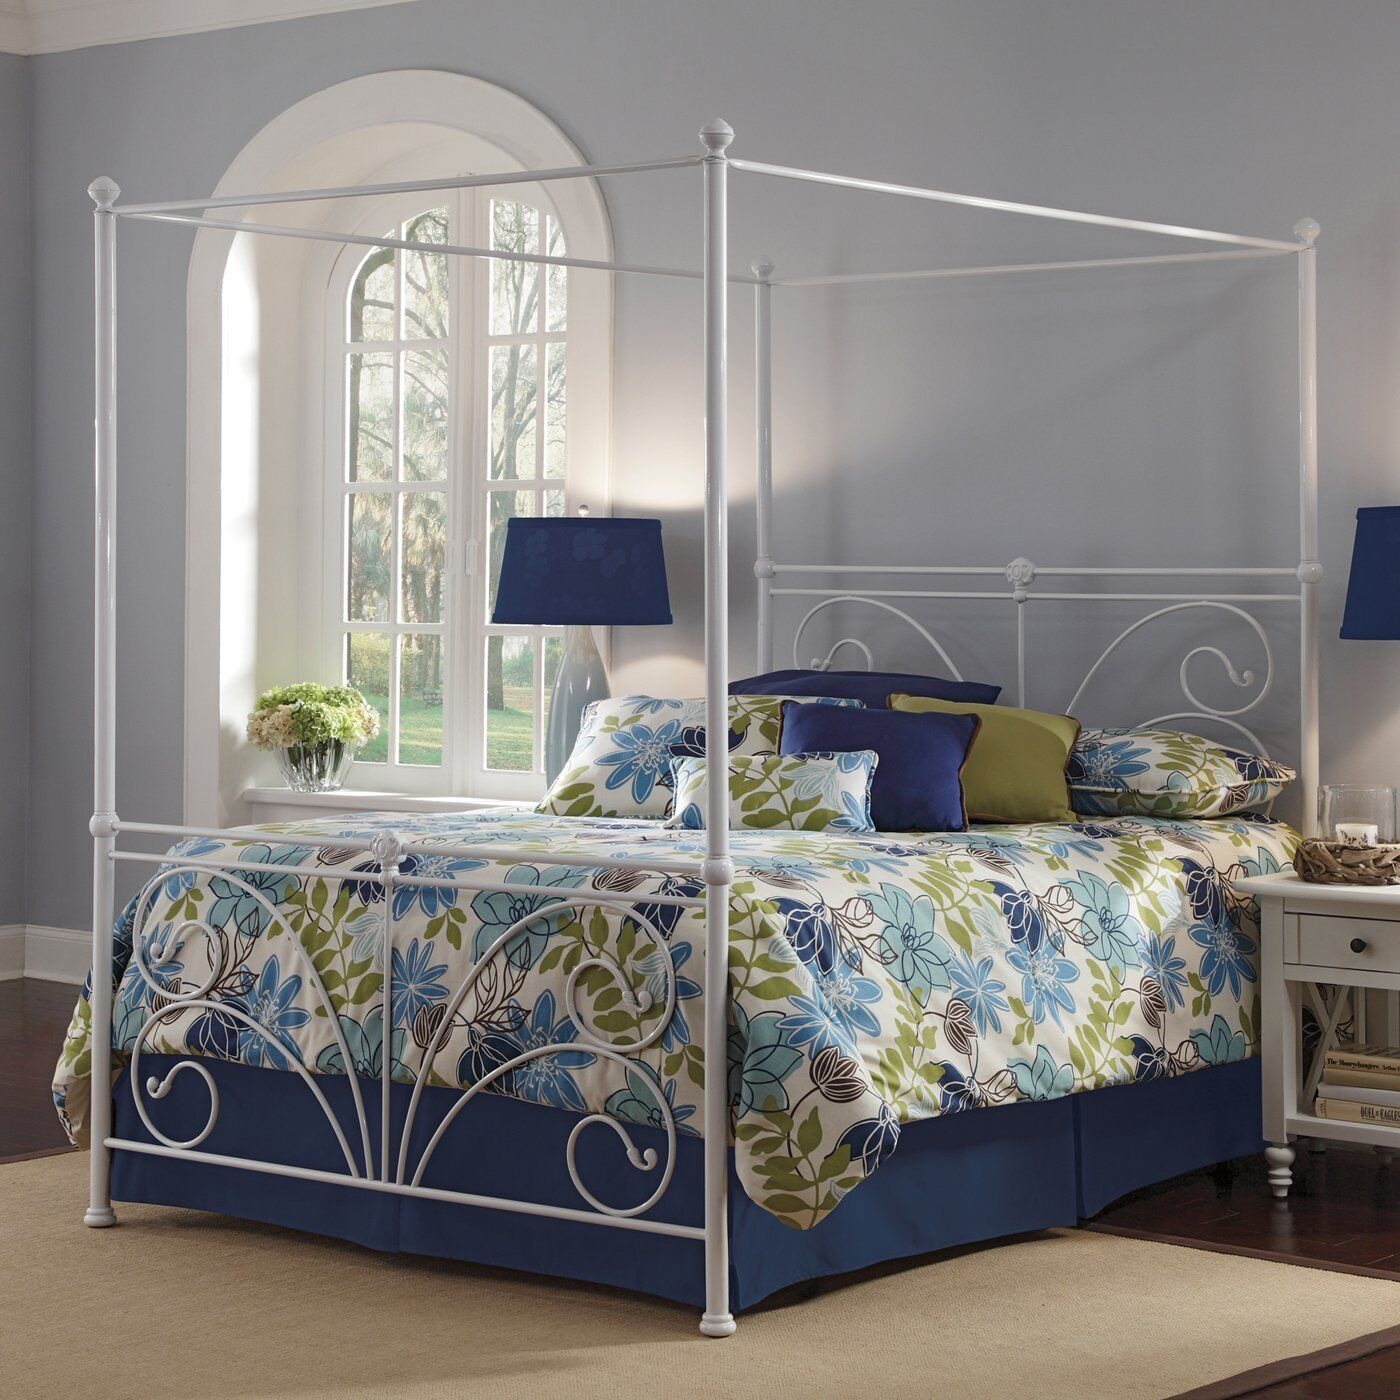 Full size canopy bed frame rainwear for Brass canopy bed frame